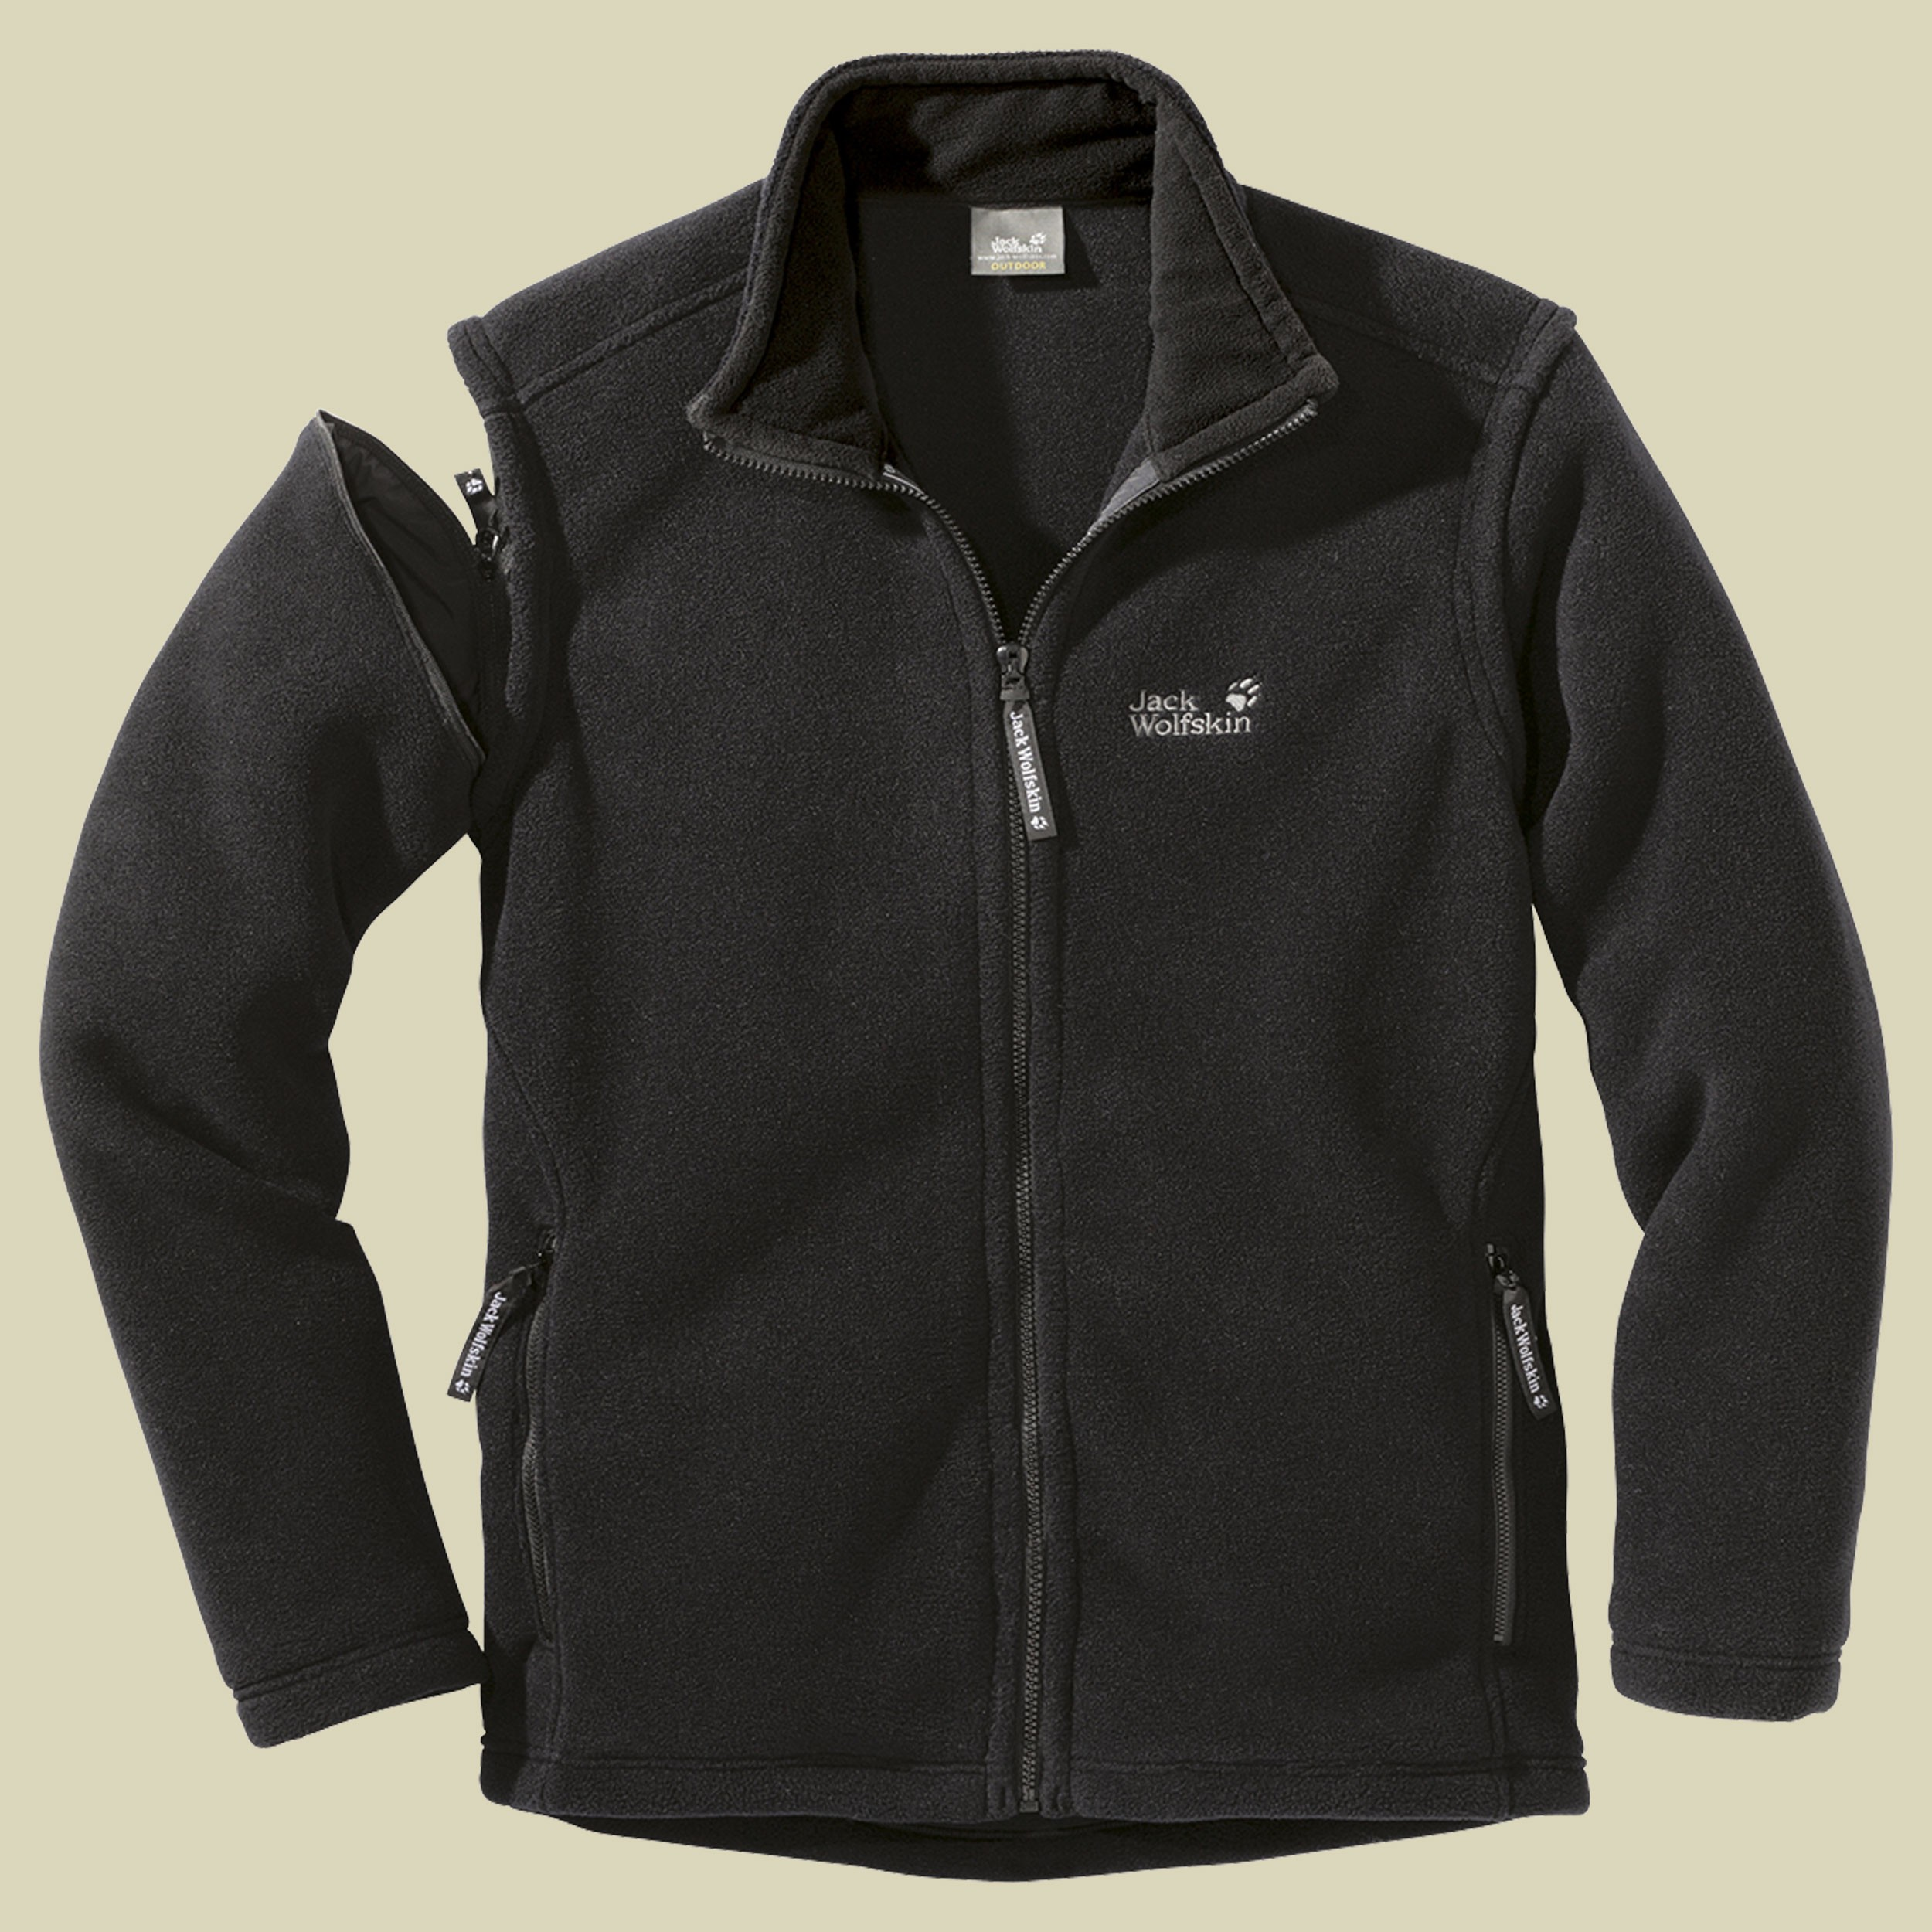 Stoney Creek Jacket Men